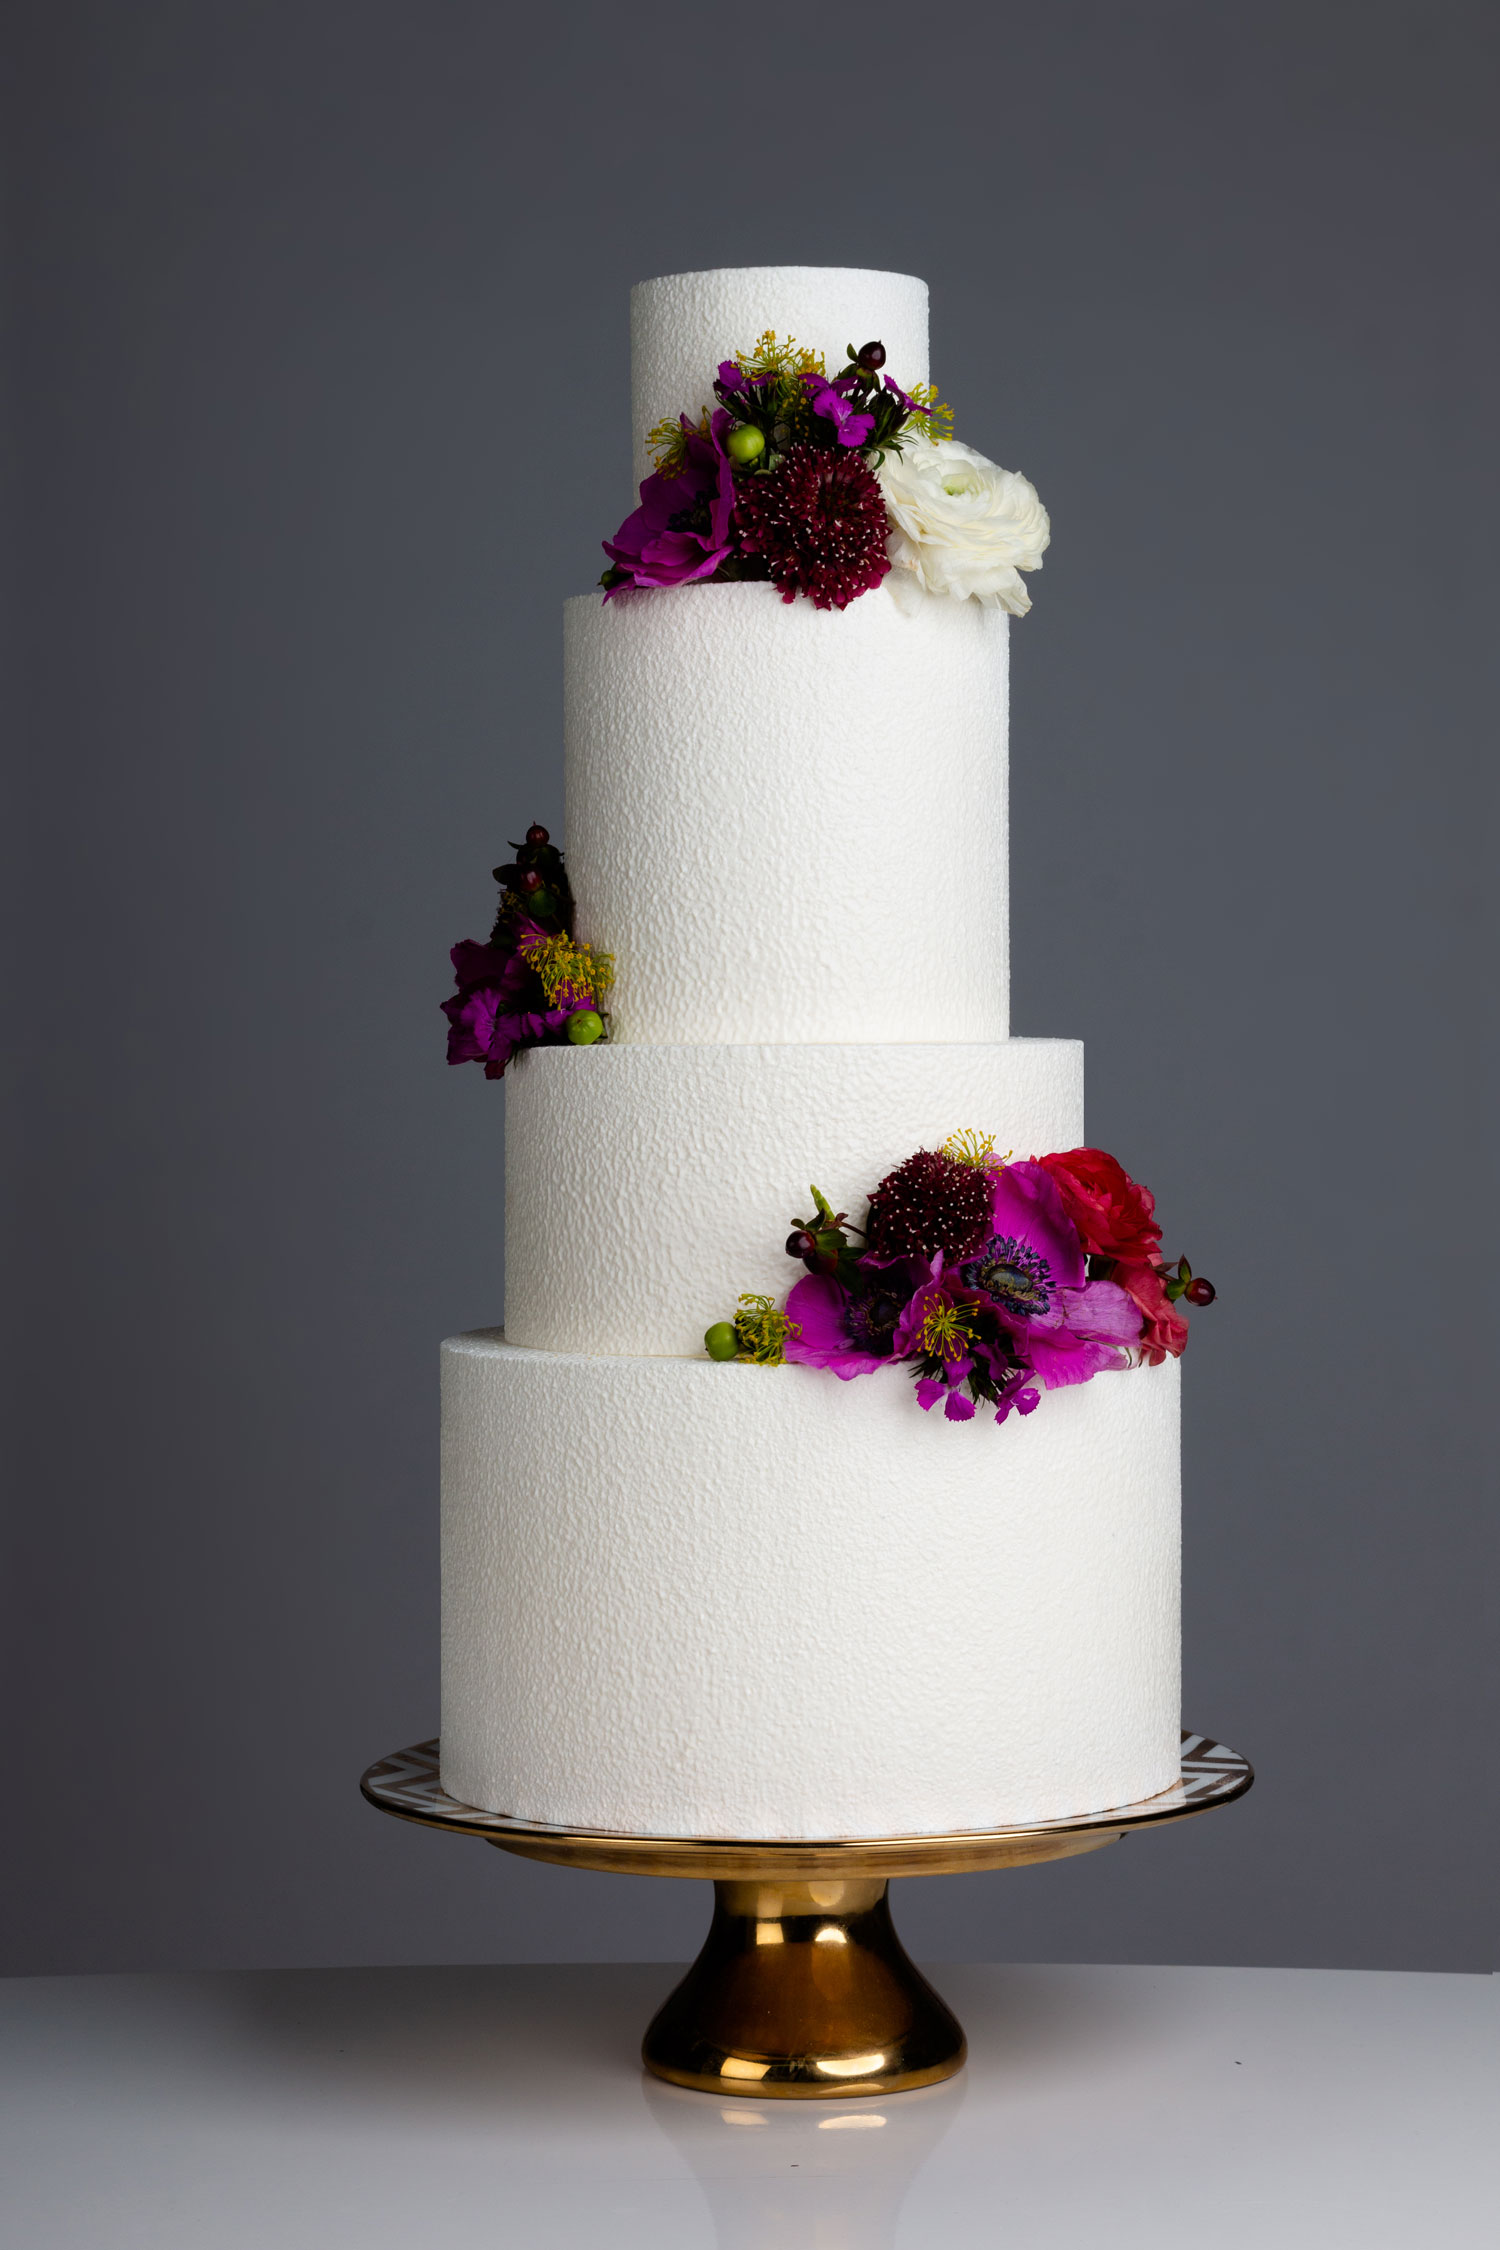 white chocolate cake with velvet texture and tropical flowers